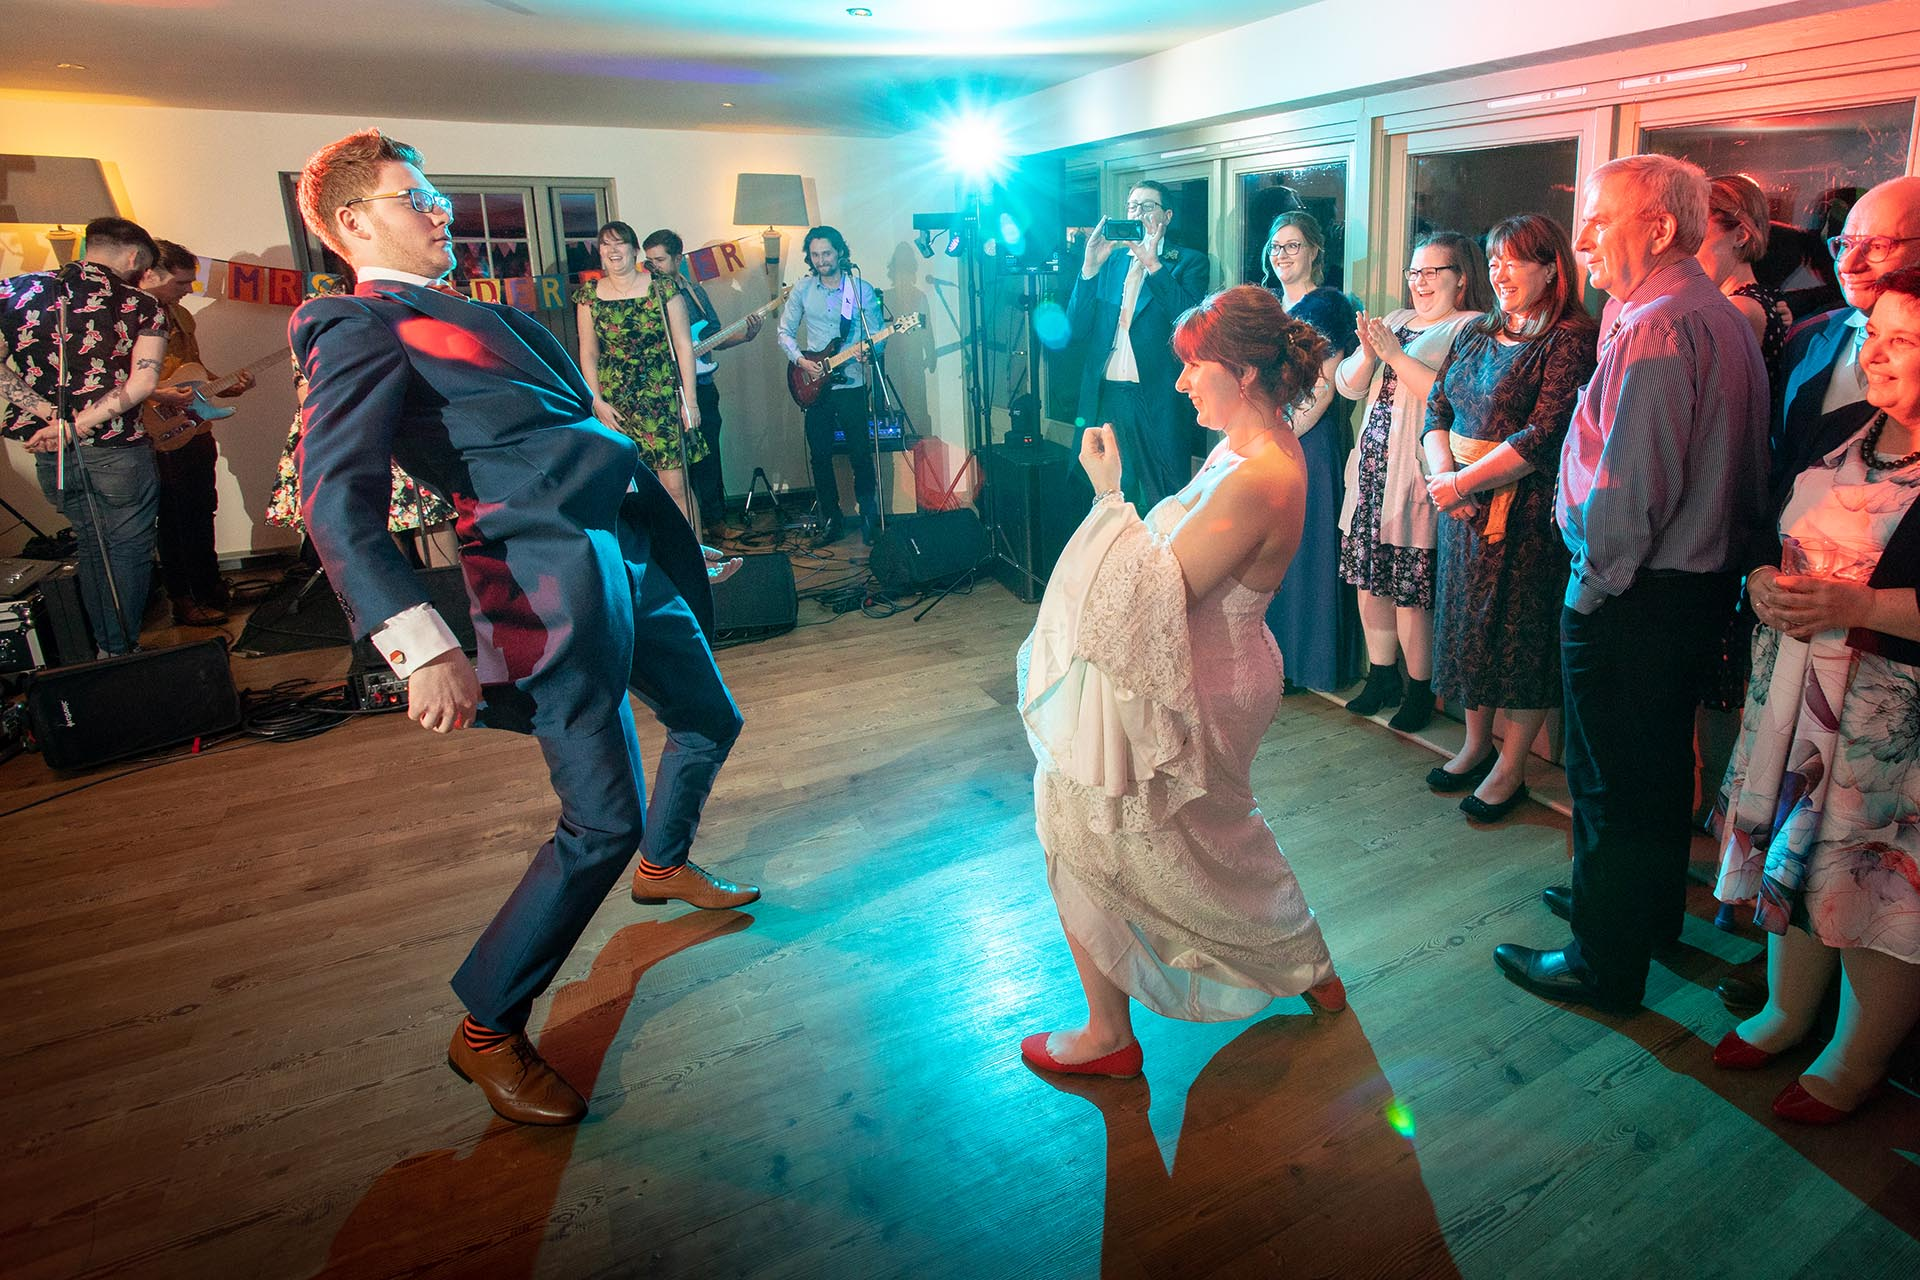 Reportage wedding photography of a first dance at The Compasses at Pattiswick photograph